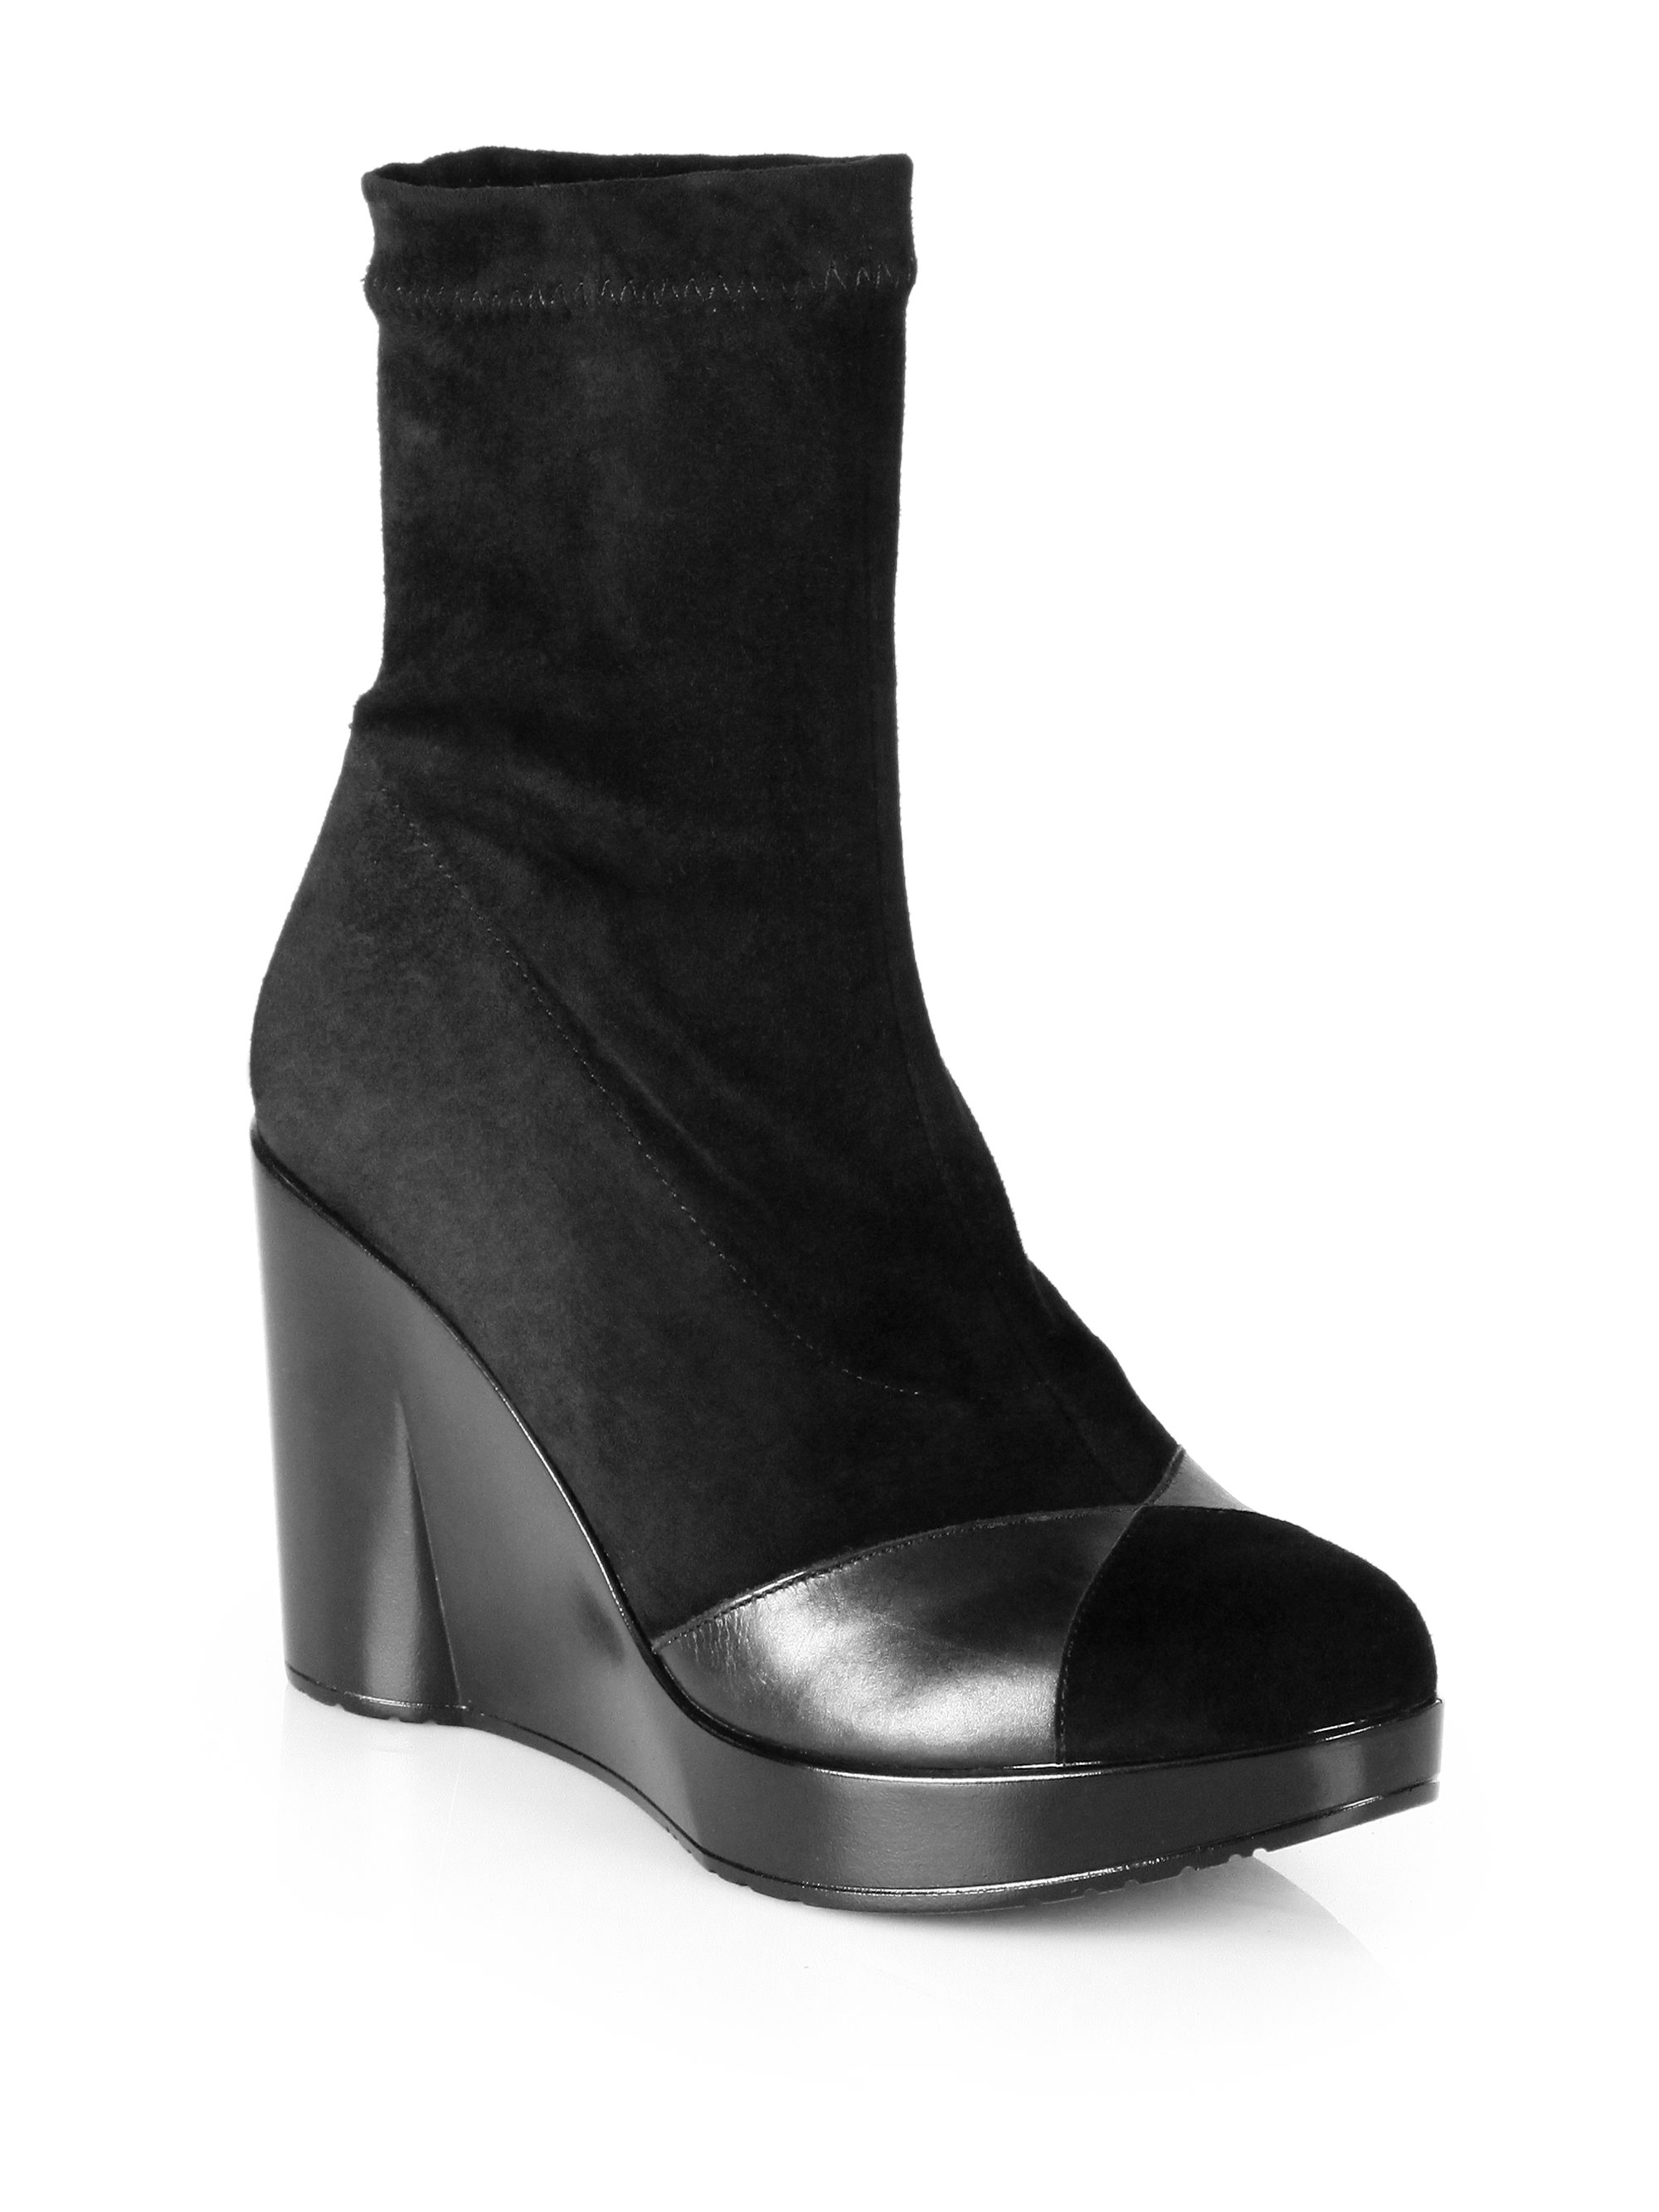 free shipping cheap online cheap sale release dates Robert Clergerie Suede Wedge Ankle Boots w/ Tags original cheap price best wholesale cheap online outlet excellent oN2YxE0n